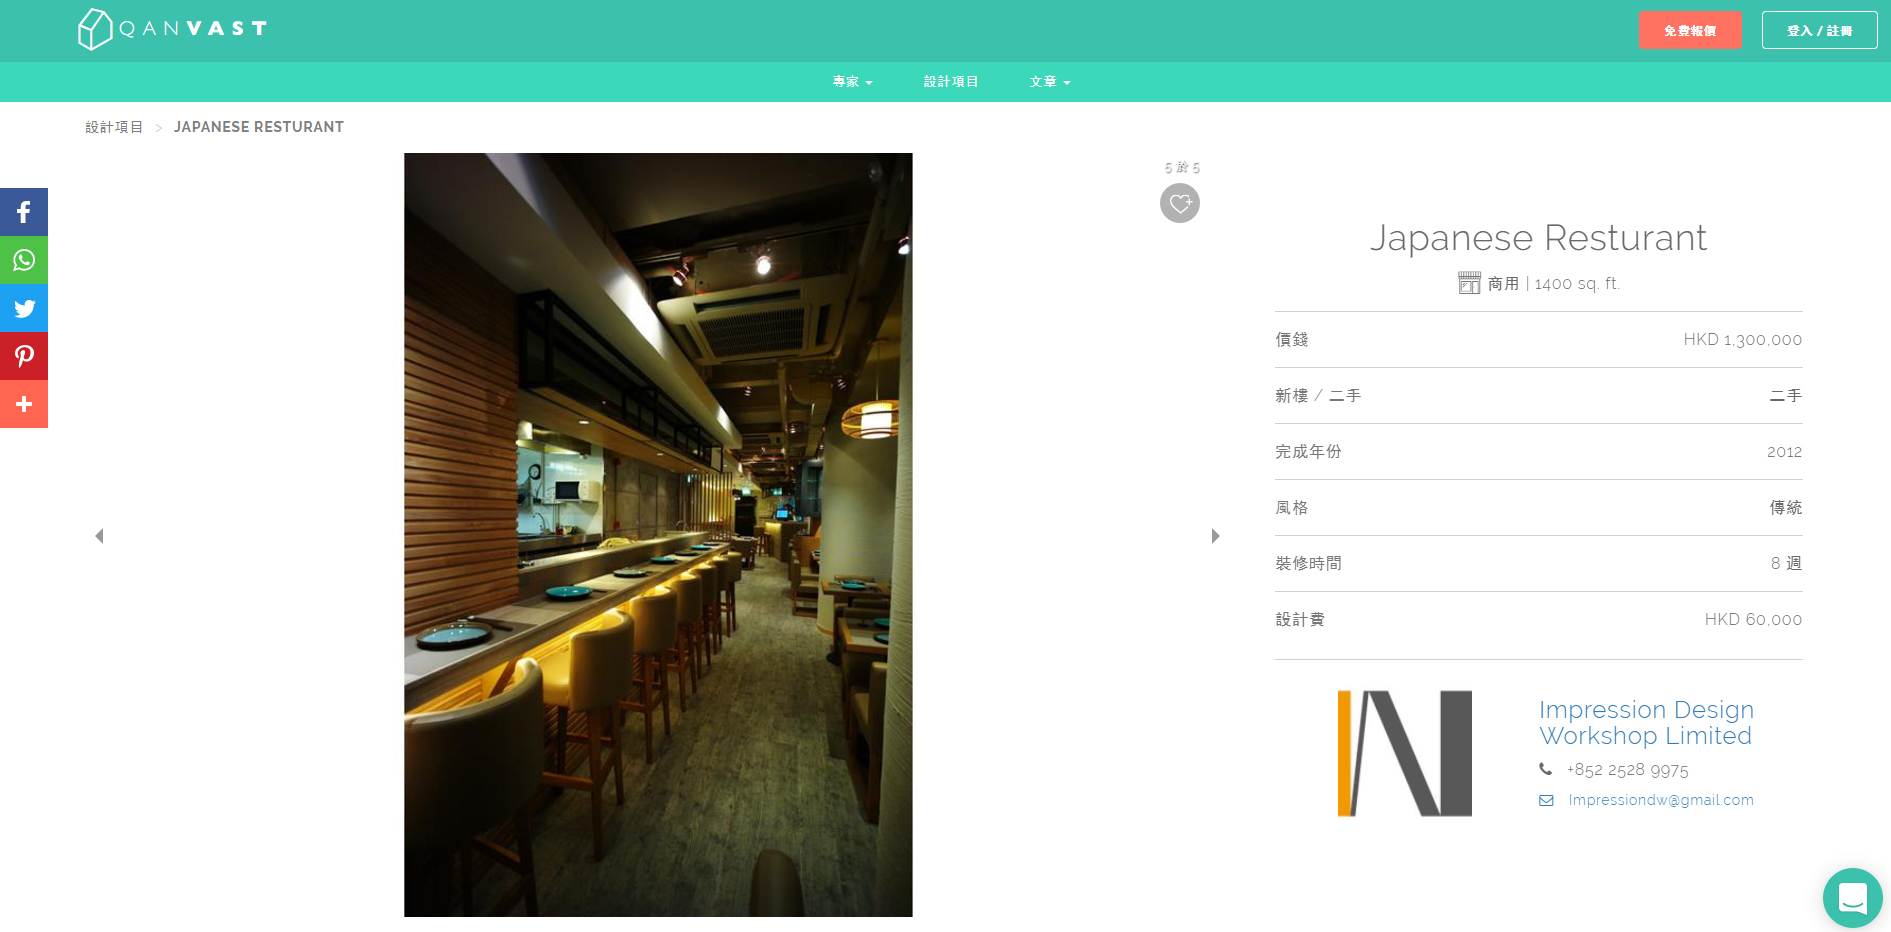 Qanvast Media - Japanese Resturant https://qanvast.com/hk/interior-design-hongkong/impression-design-limited-japanese-resturant-6423